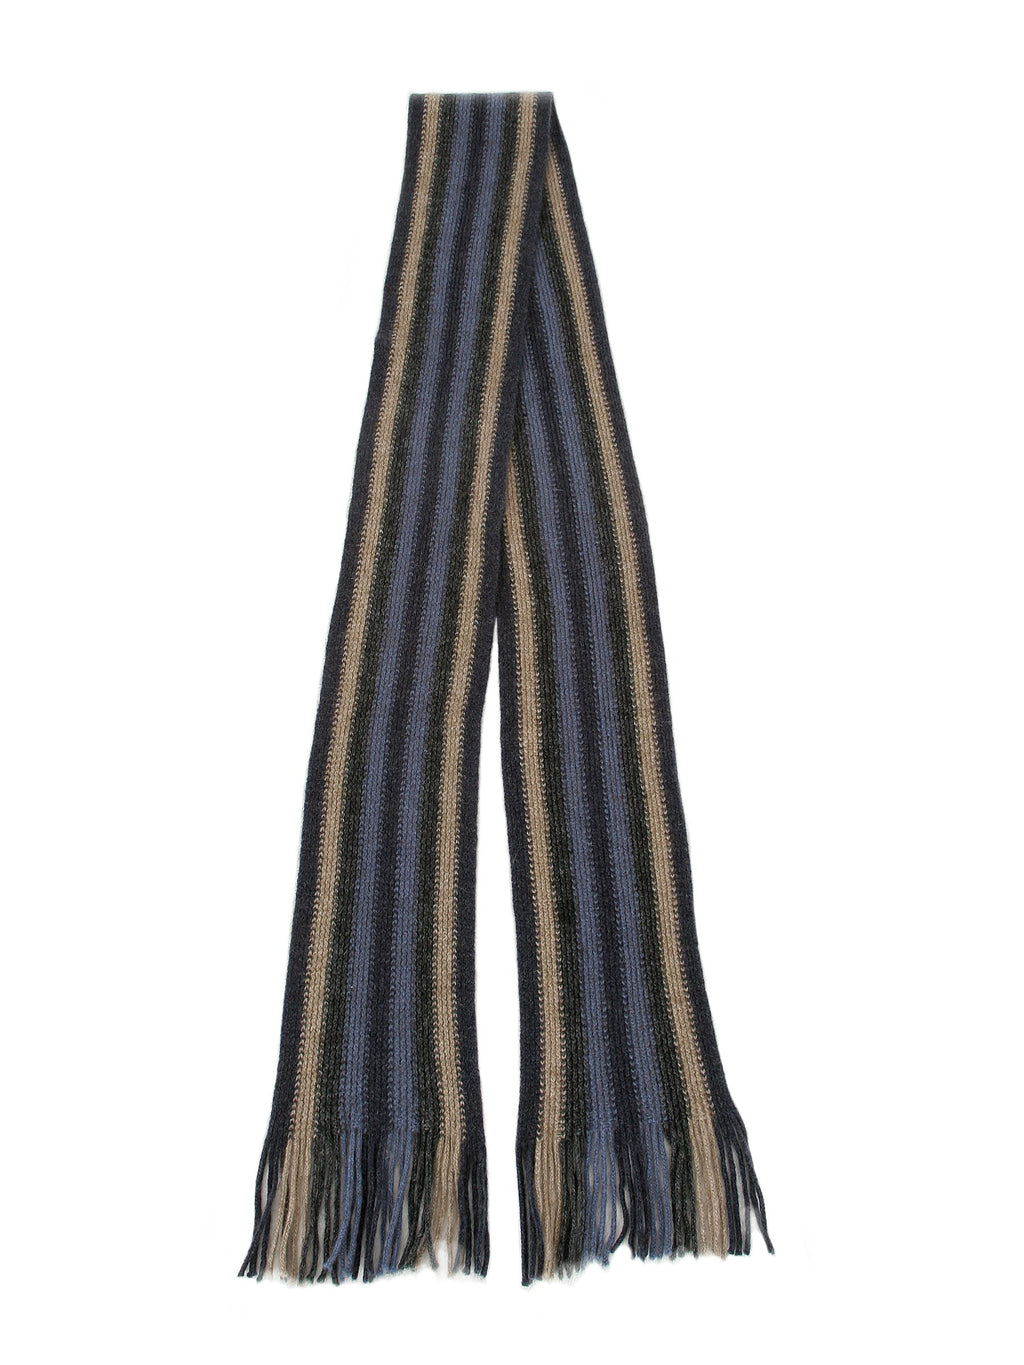 LONG VERTICAL STRIPED SCARF - Woolshed Gallery